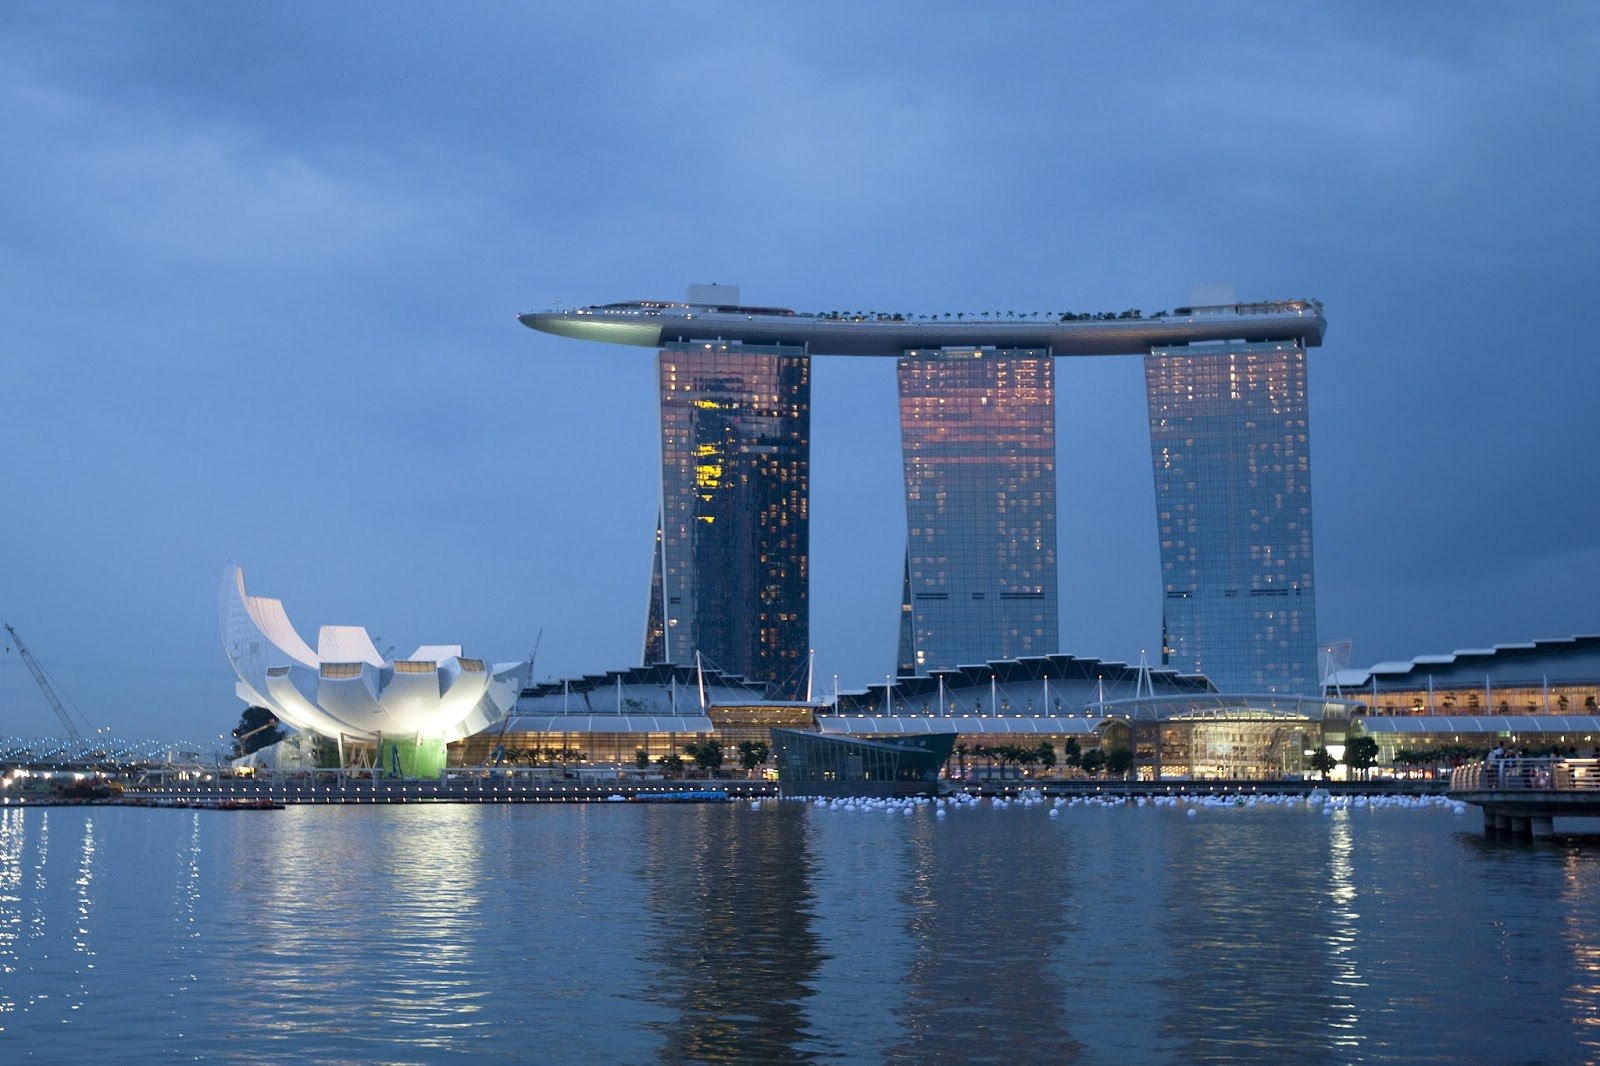 Marina Bay Sands Singapore Laticrete Australia Conversations Marina Bay Sands Singapore